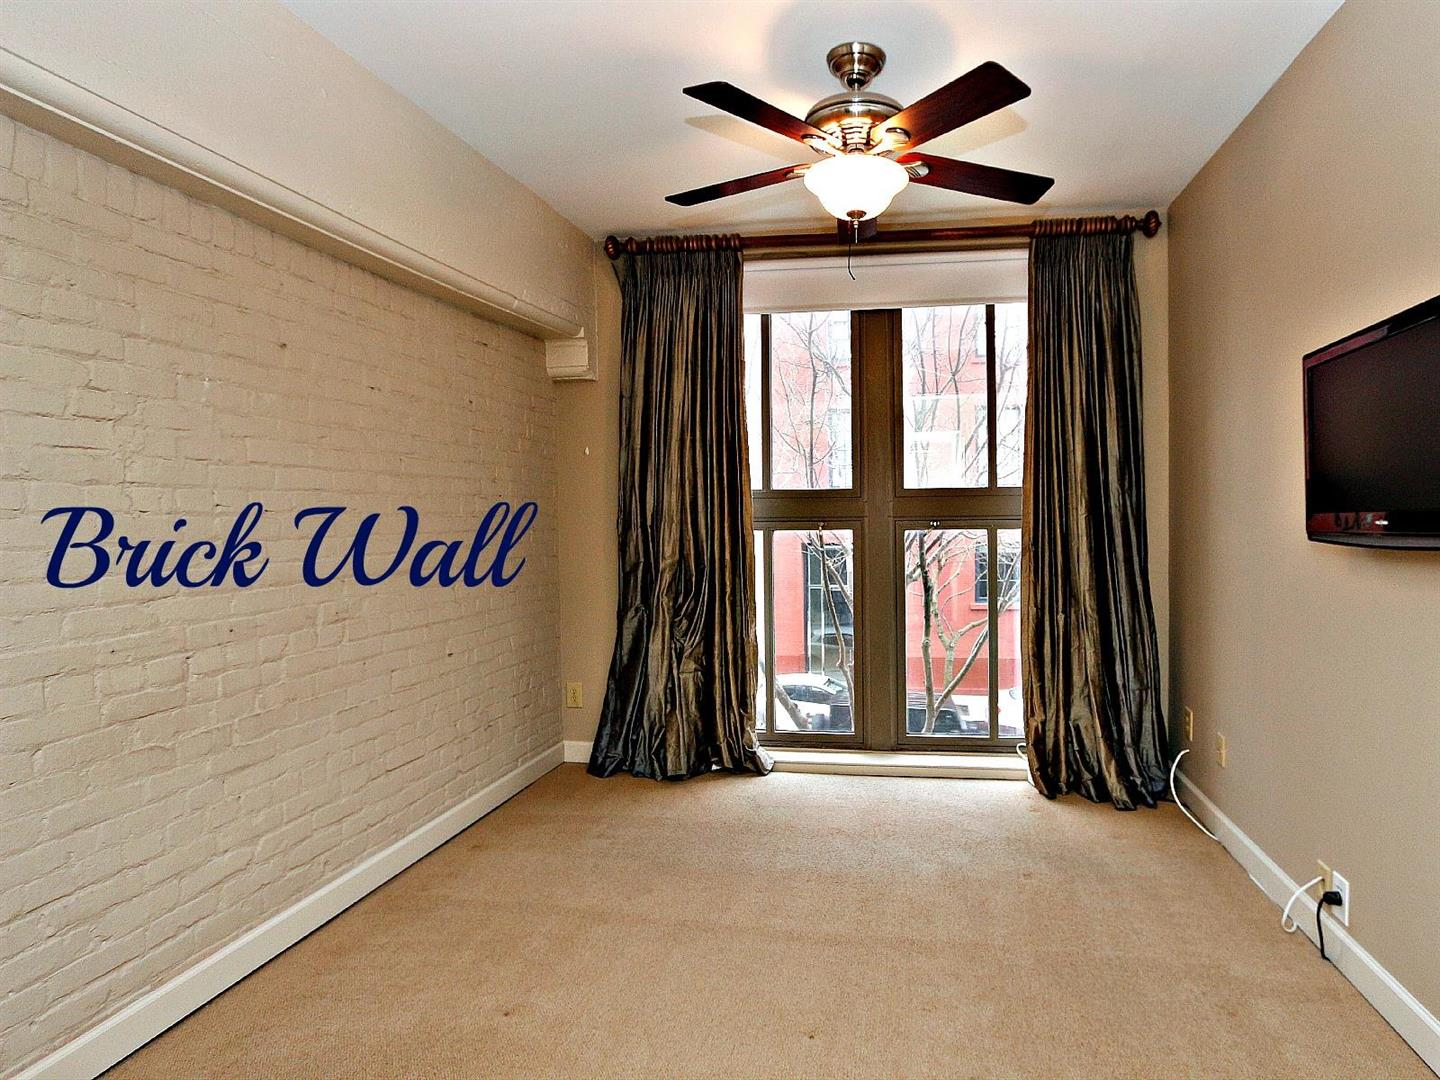 333JuliaSt.209MasterBrickwall.jpg